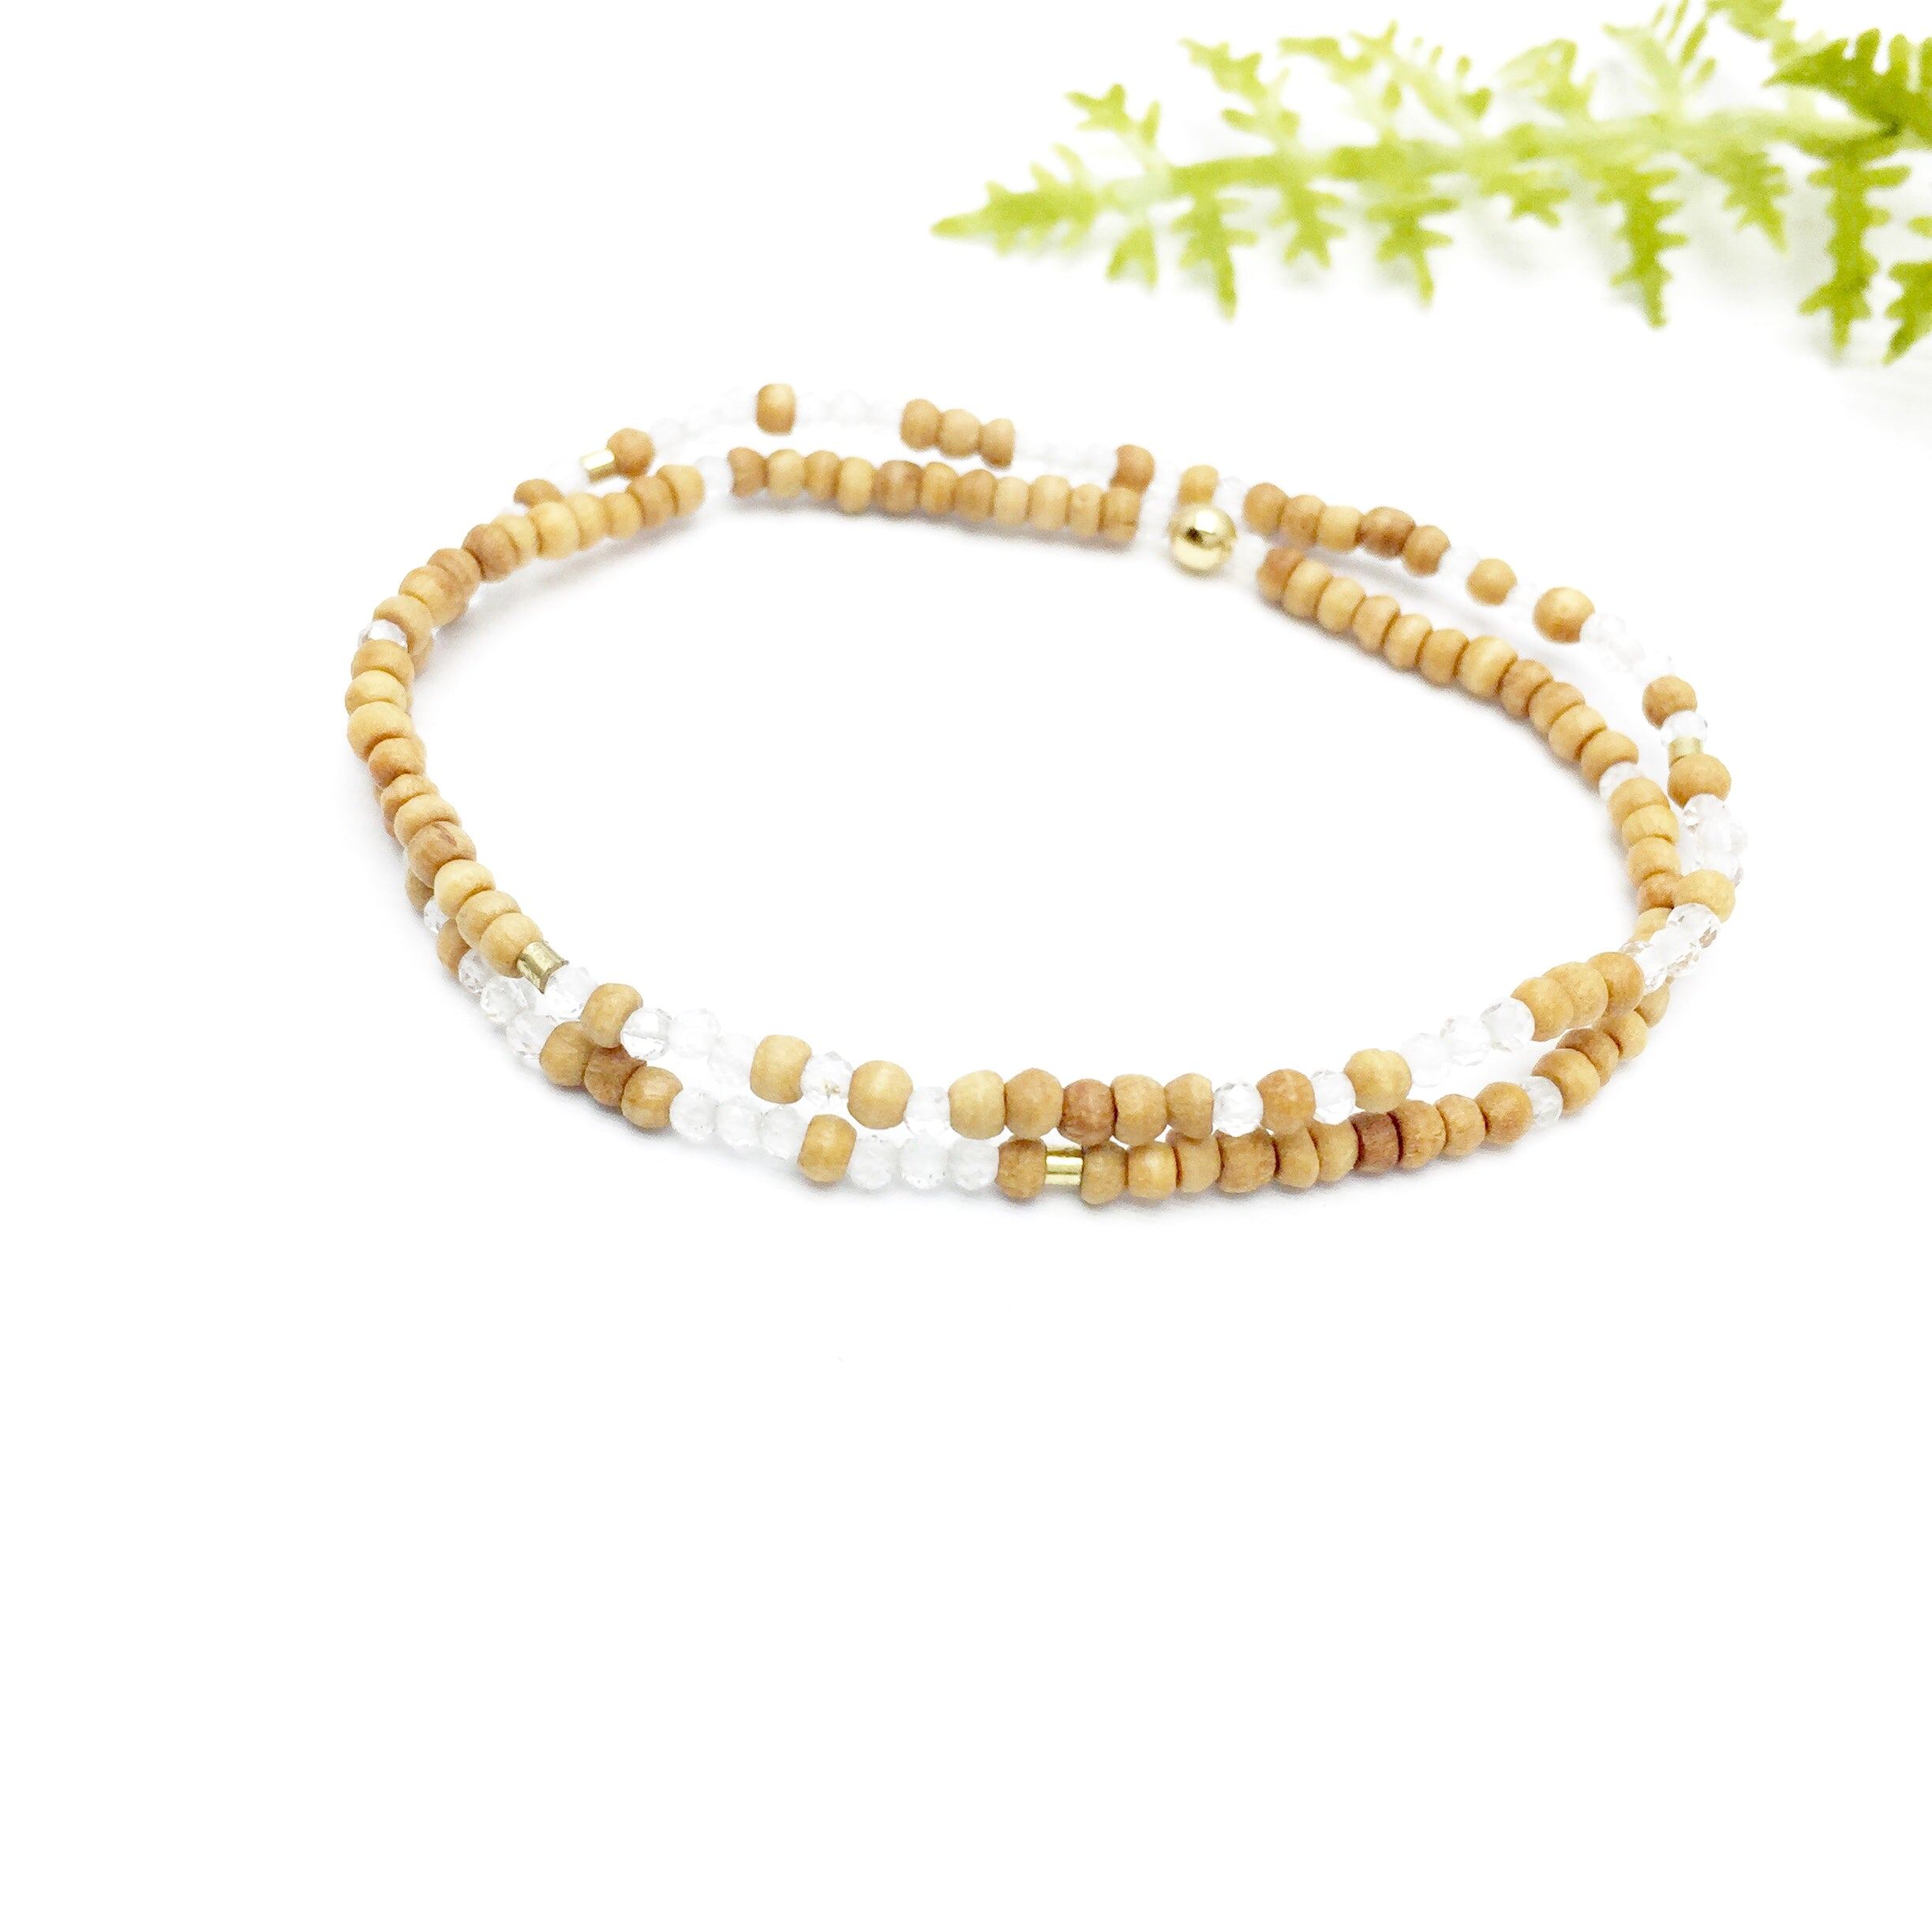 DREAMS COME TRUE Double-Wrap  Sandalwood Morse Code Mala® Bracelet